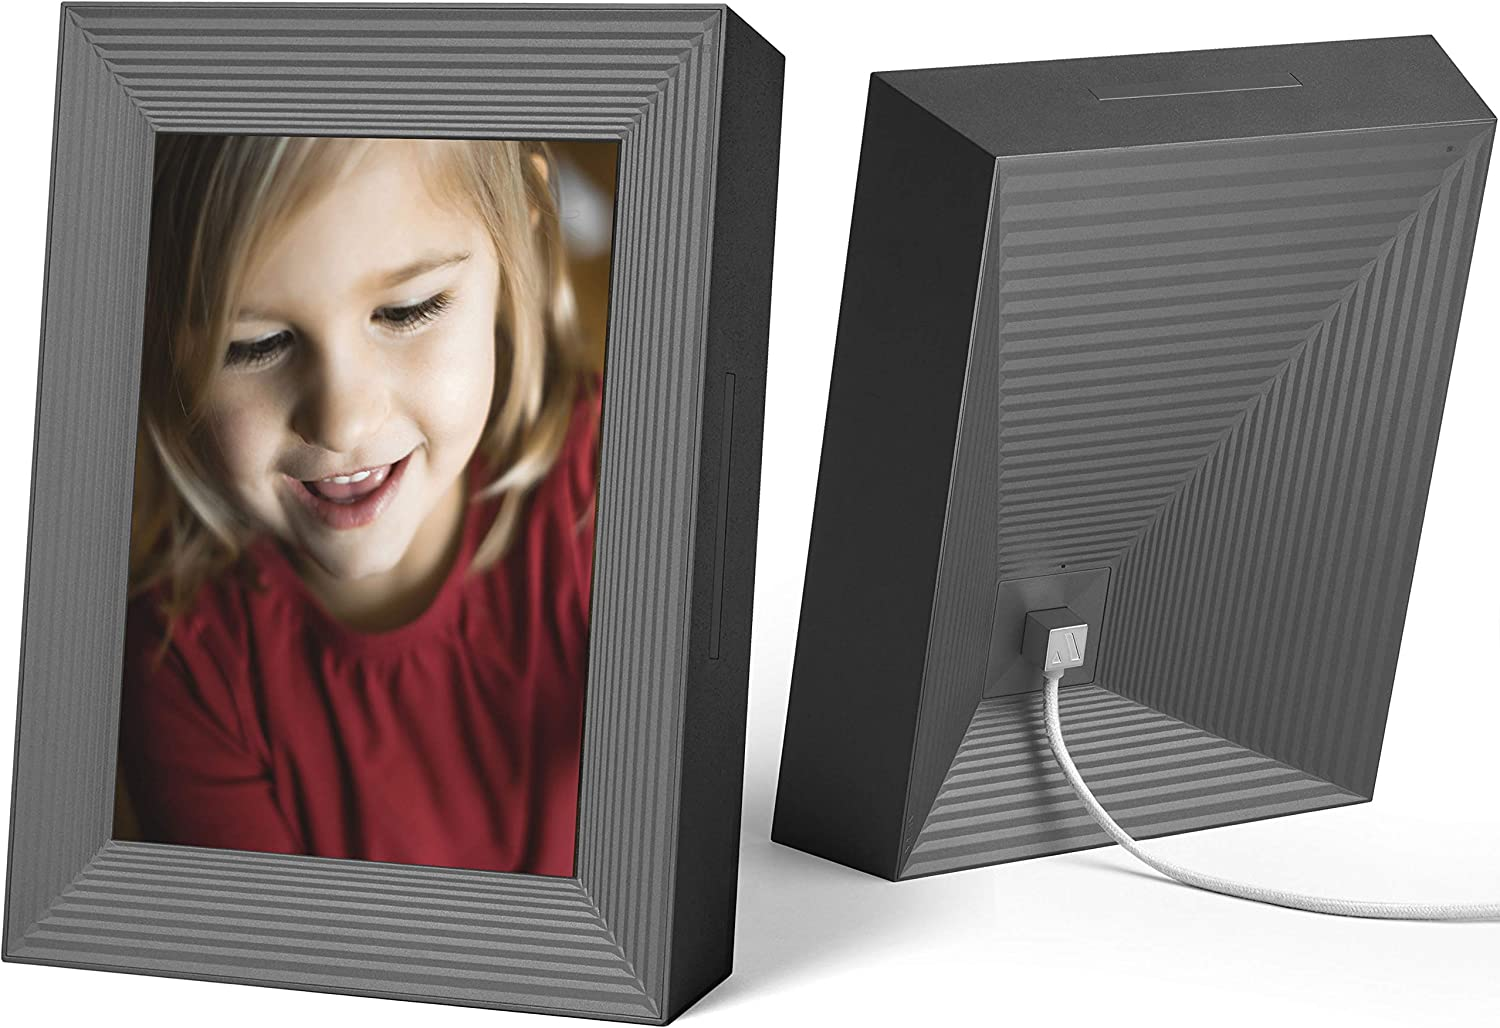 Aura Frames Digital Picture Frame Ultra HD Display